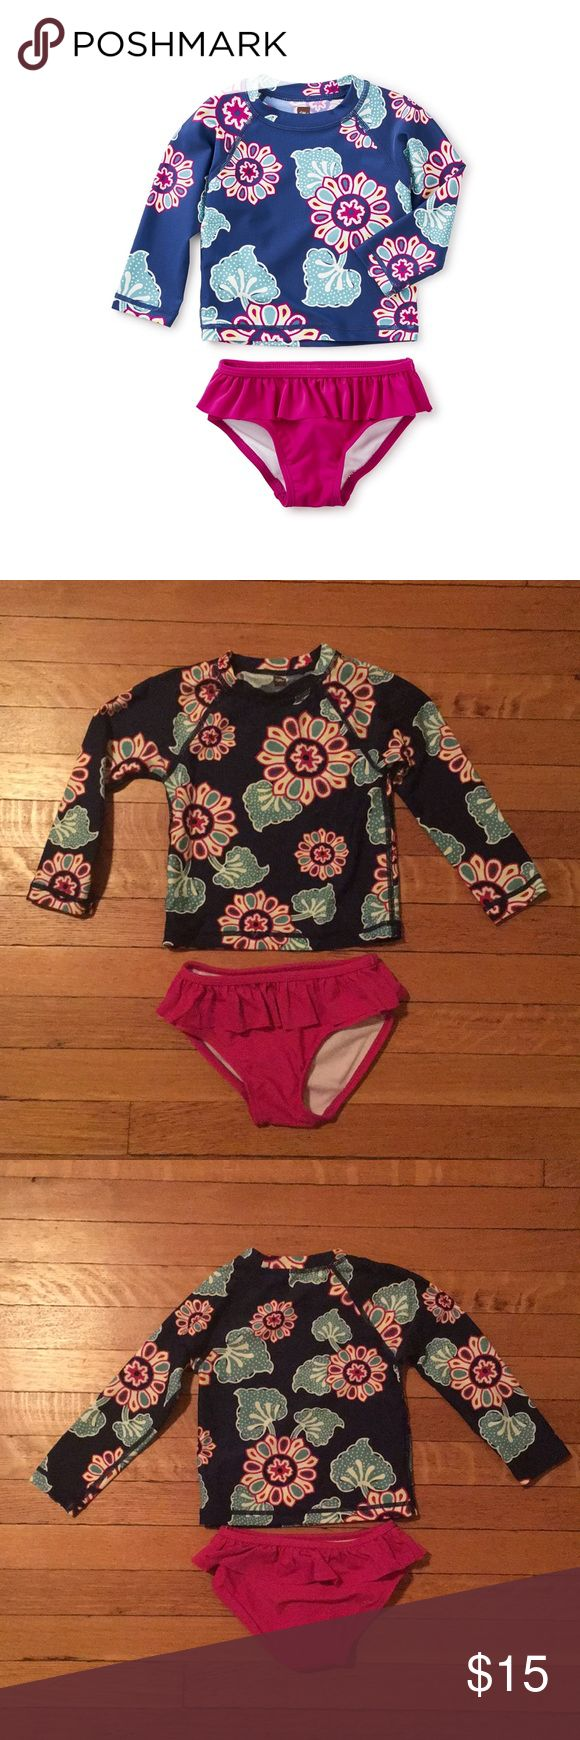 Tea collection wando rash guard set Excellent used condition.  No flaws.  Absolutely adorable and protects your little one from the sun! Tea Collection Swim Rashguards